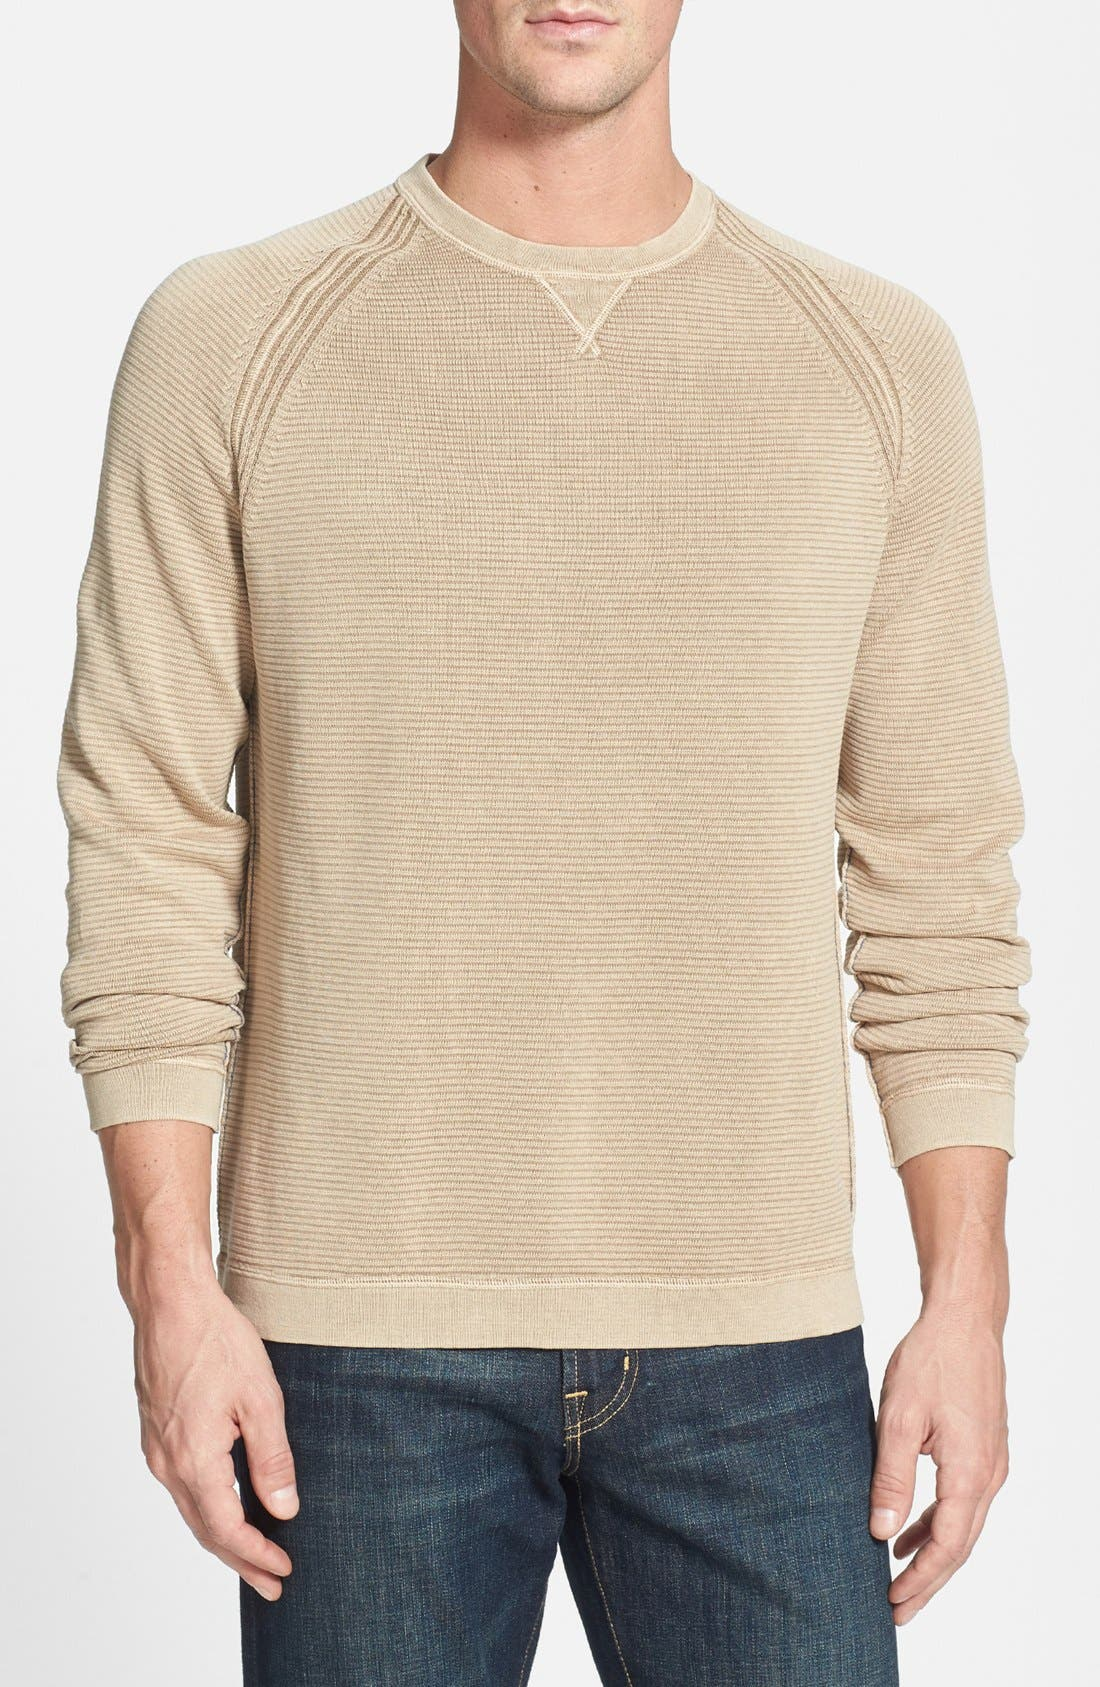 Main Image - Tommy Bahama 'Beachcomber' Sweater